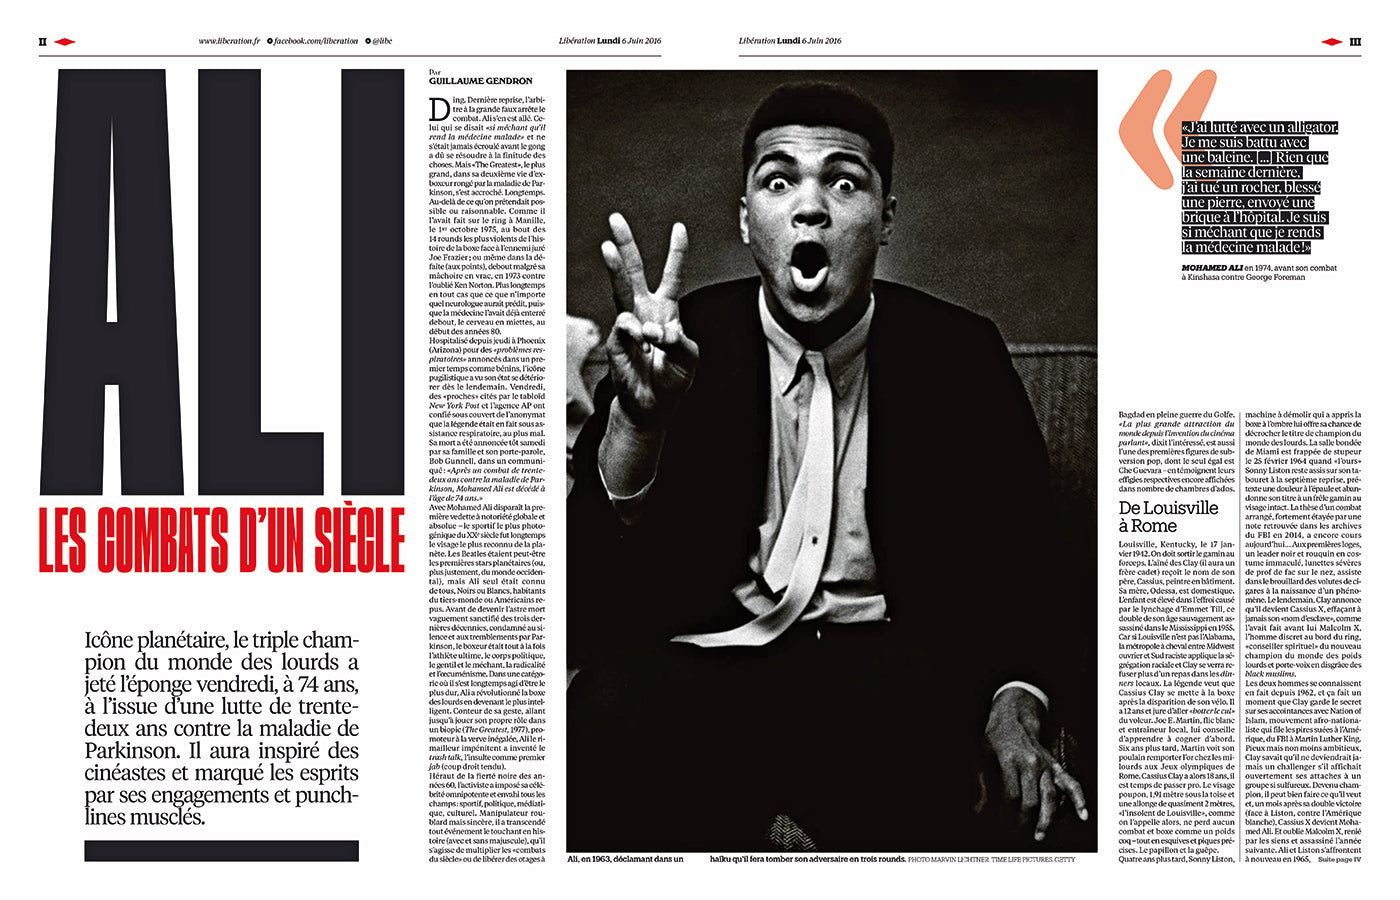 Muhammad Ali in the French newspaper Libération on the occasion of his death in 2016. (Photo: Libération)